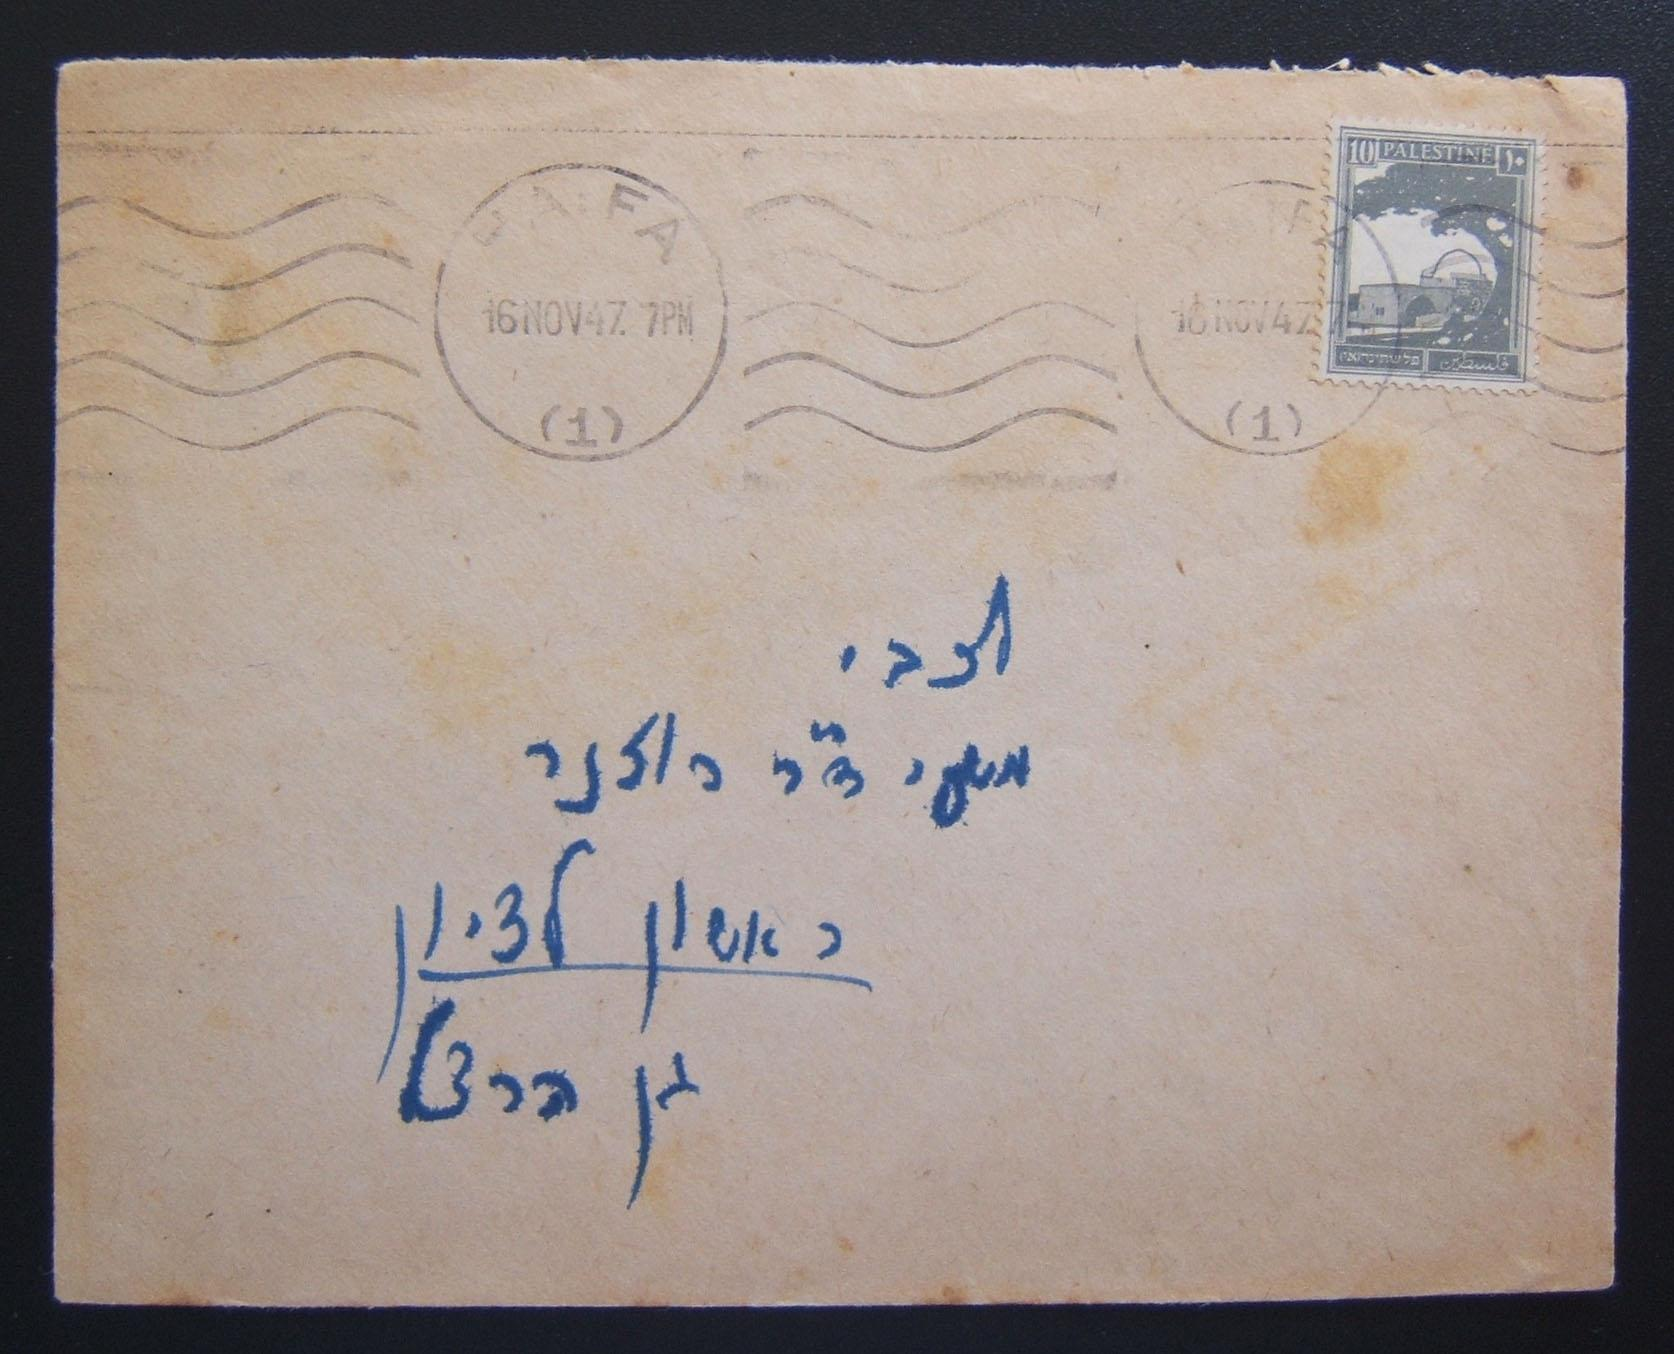 1947 Mandatory couriered mail: 16 NOV 47 comm cv ex HAIFA (returm addressed moshav Regba via Naharia post) to RLZ, franked 10m per period letter rate using Pictorals Ba97 tied by m